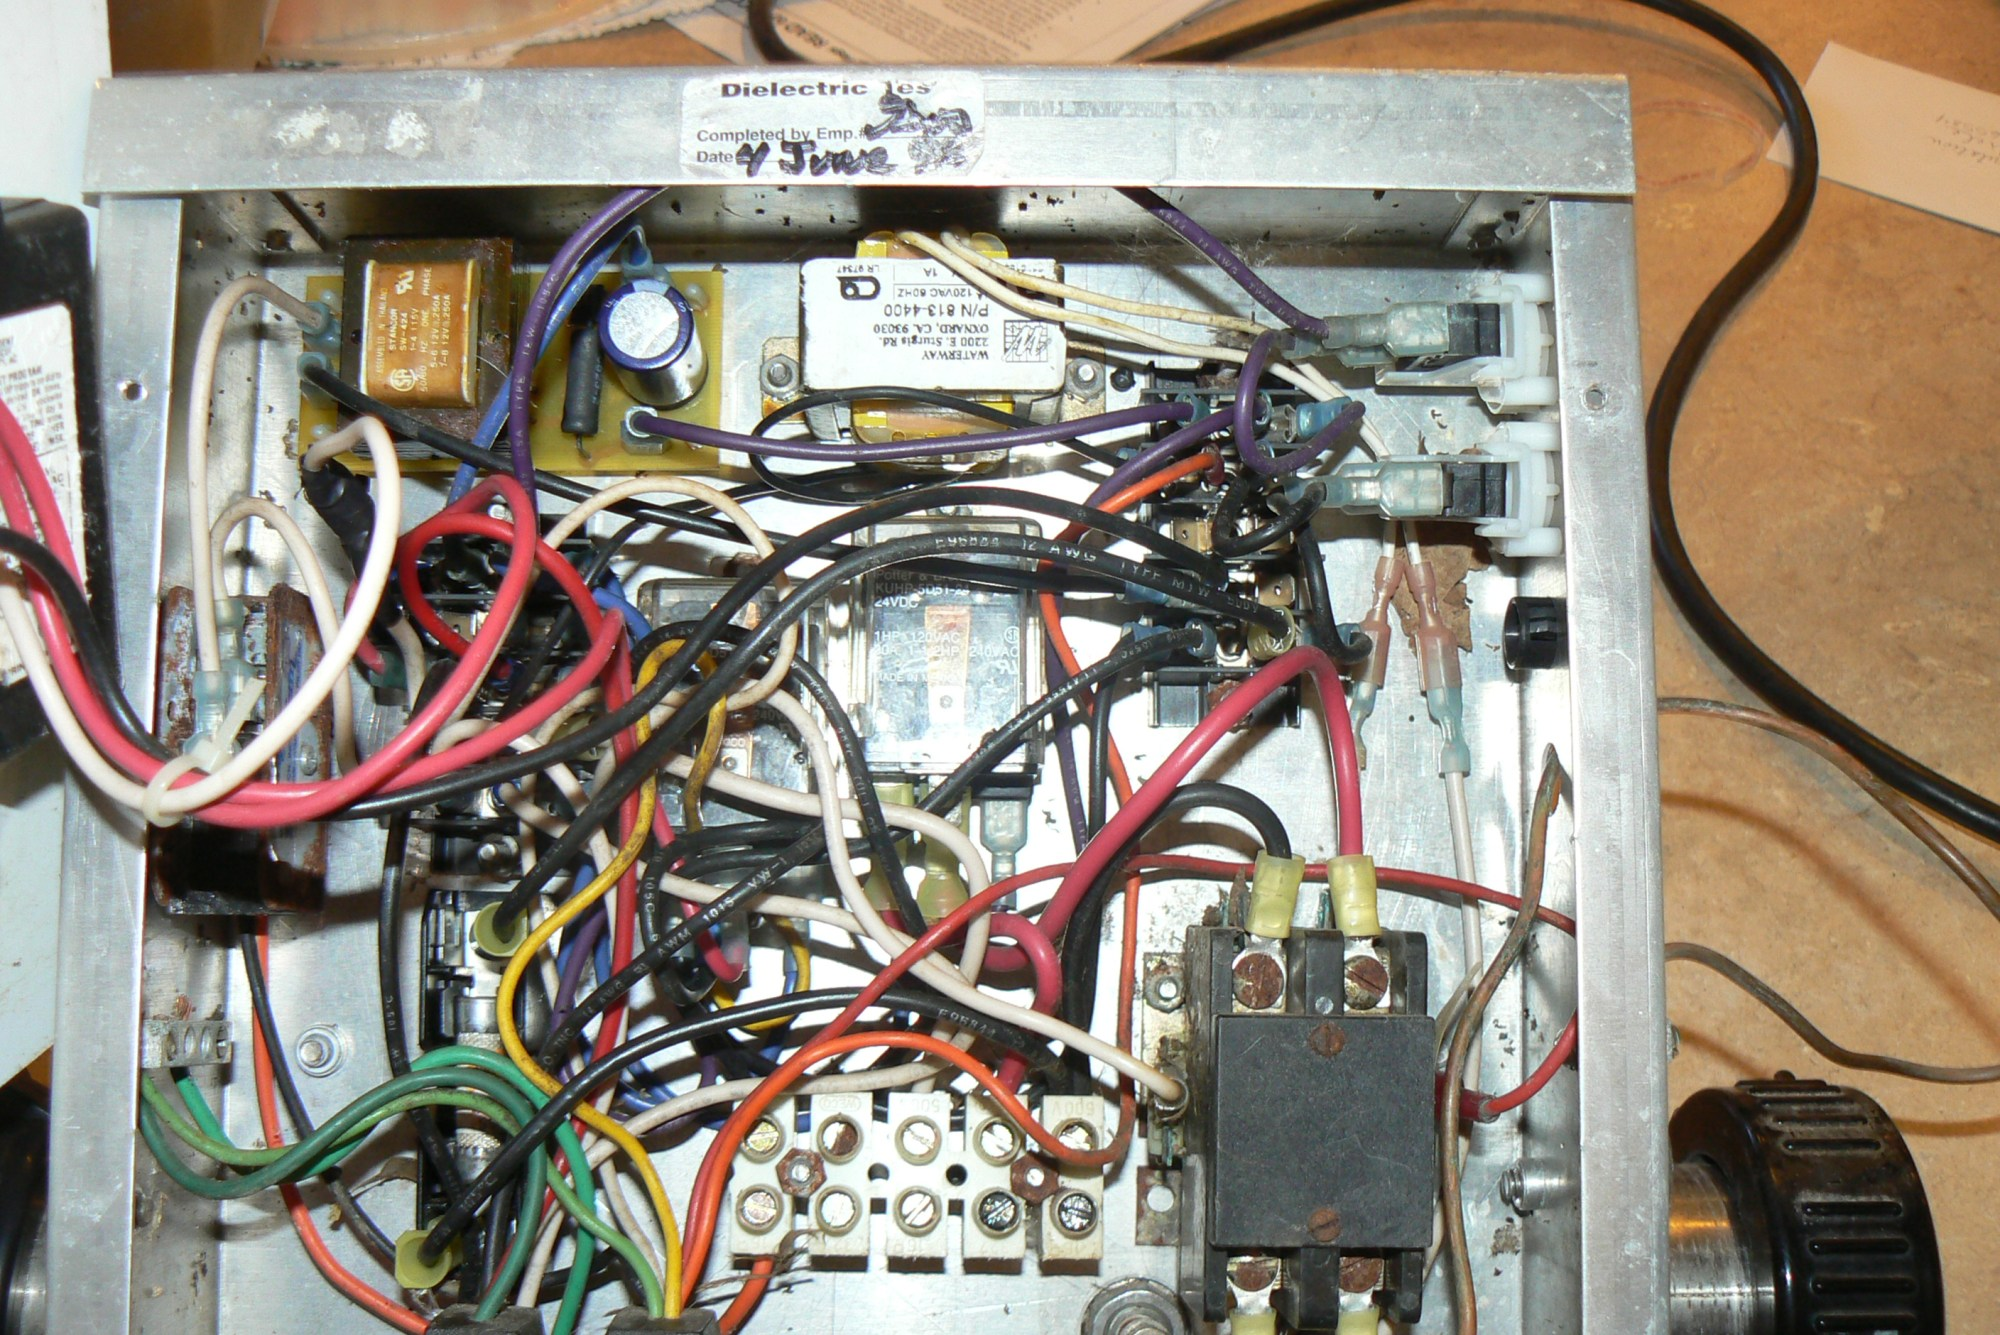 hight resolution of hot tub thermostat wiring diagram best wiring library hot tub controller wiring diagram hot tub control